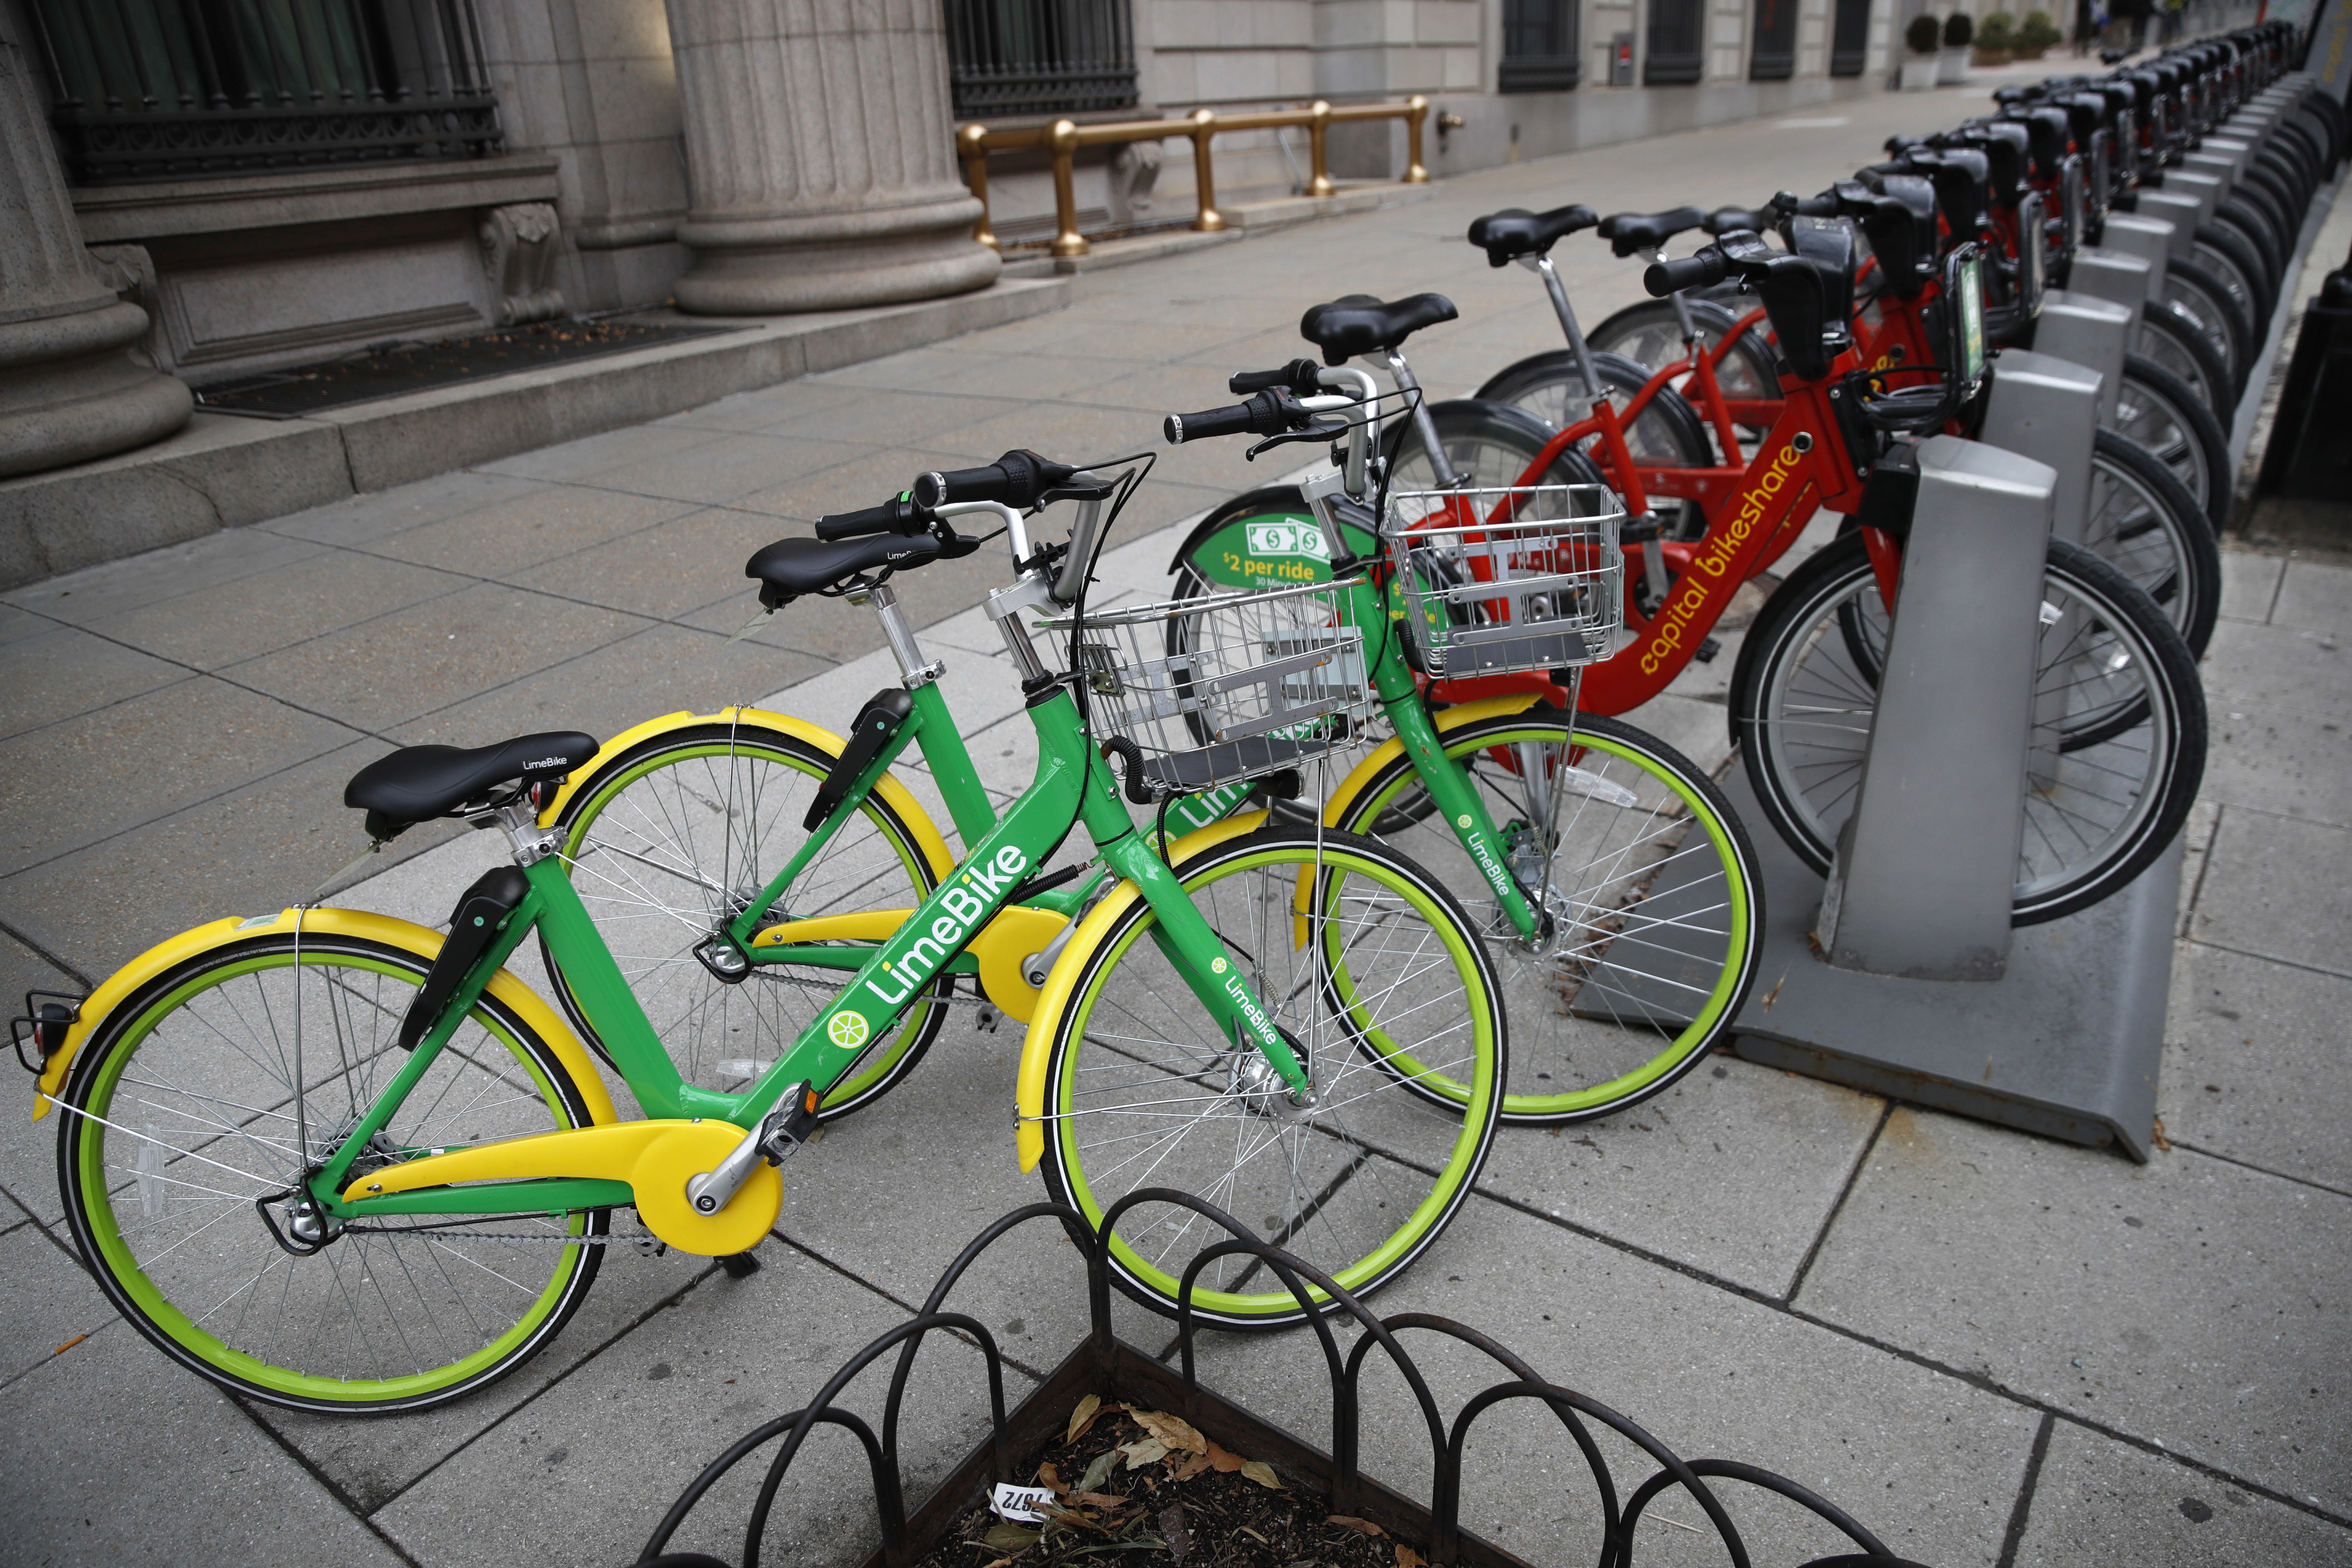 As scooters, bikes, and transit startups flood the streets, cities need to control the curb